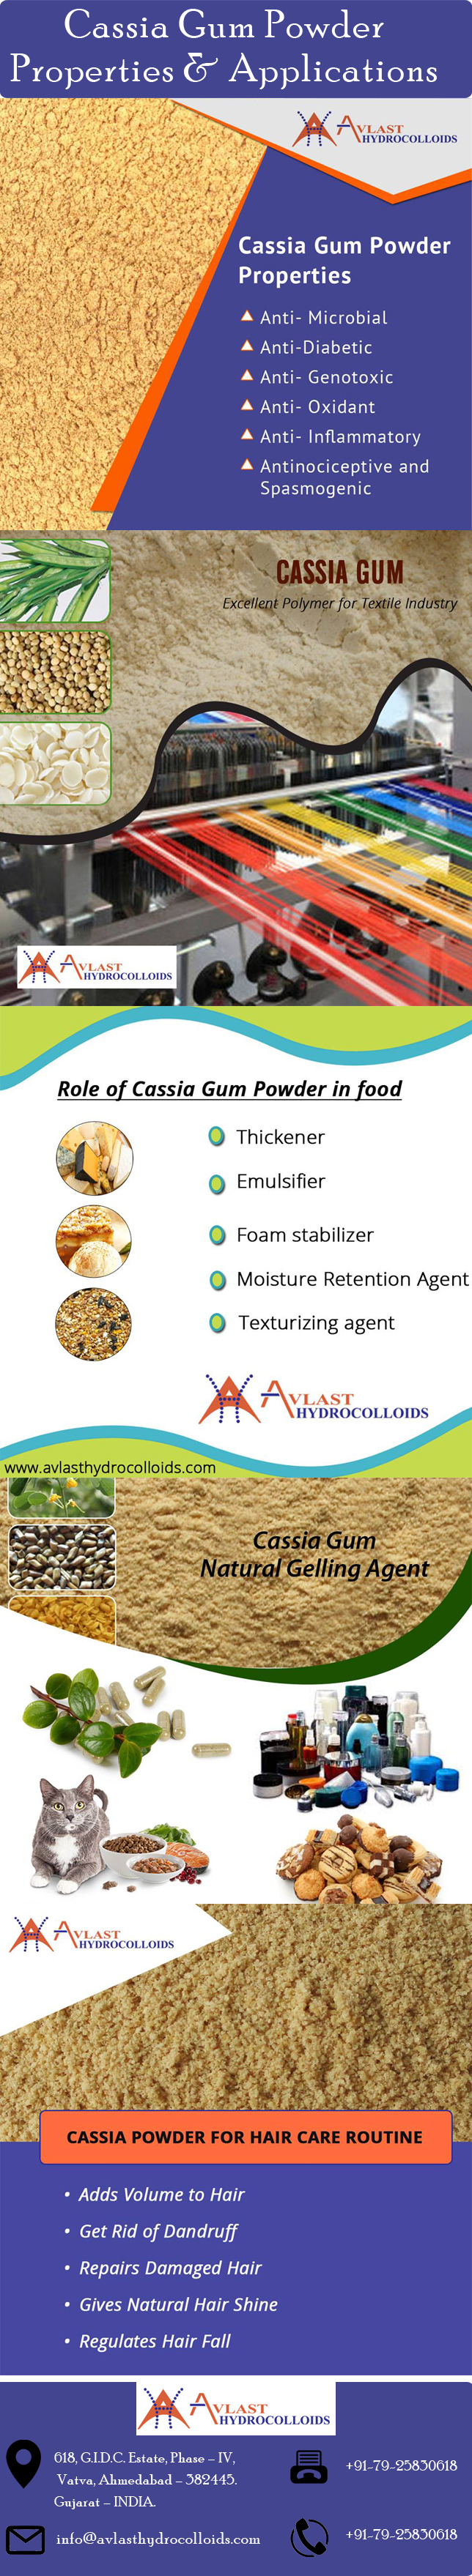 Cassia Gum Powder Applications and Properties